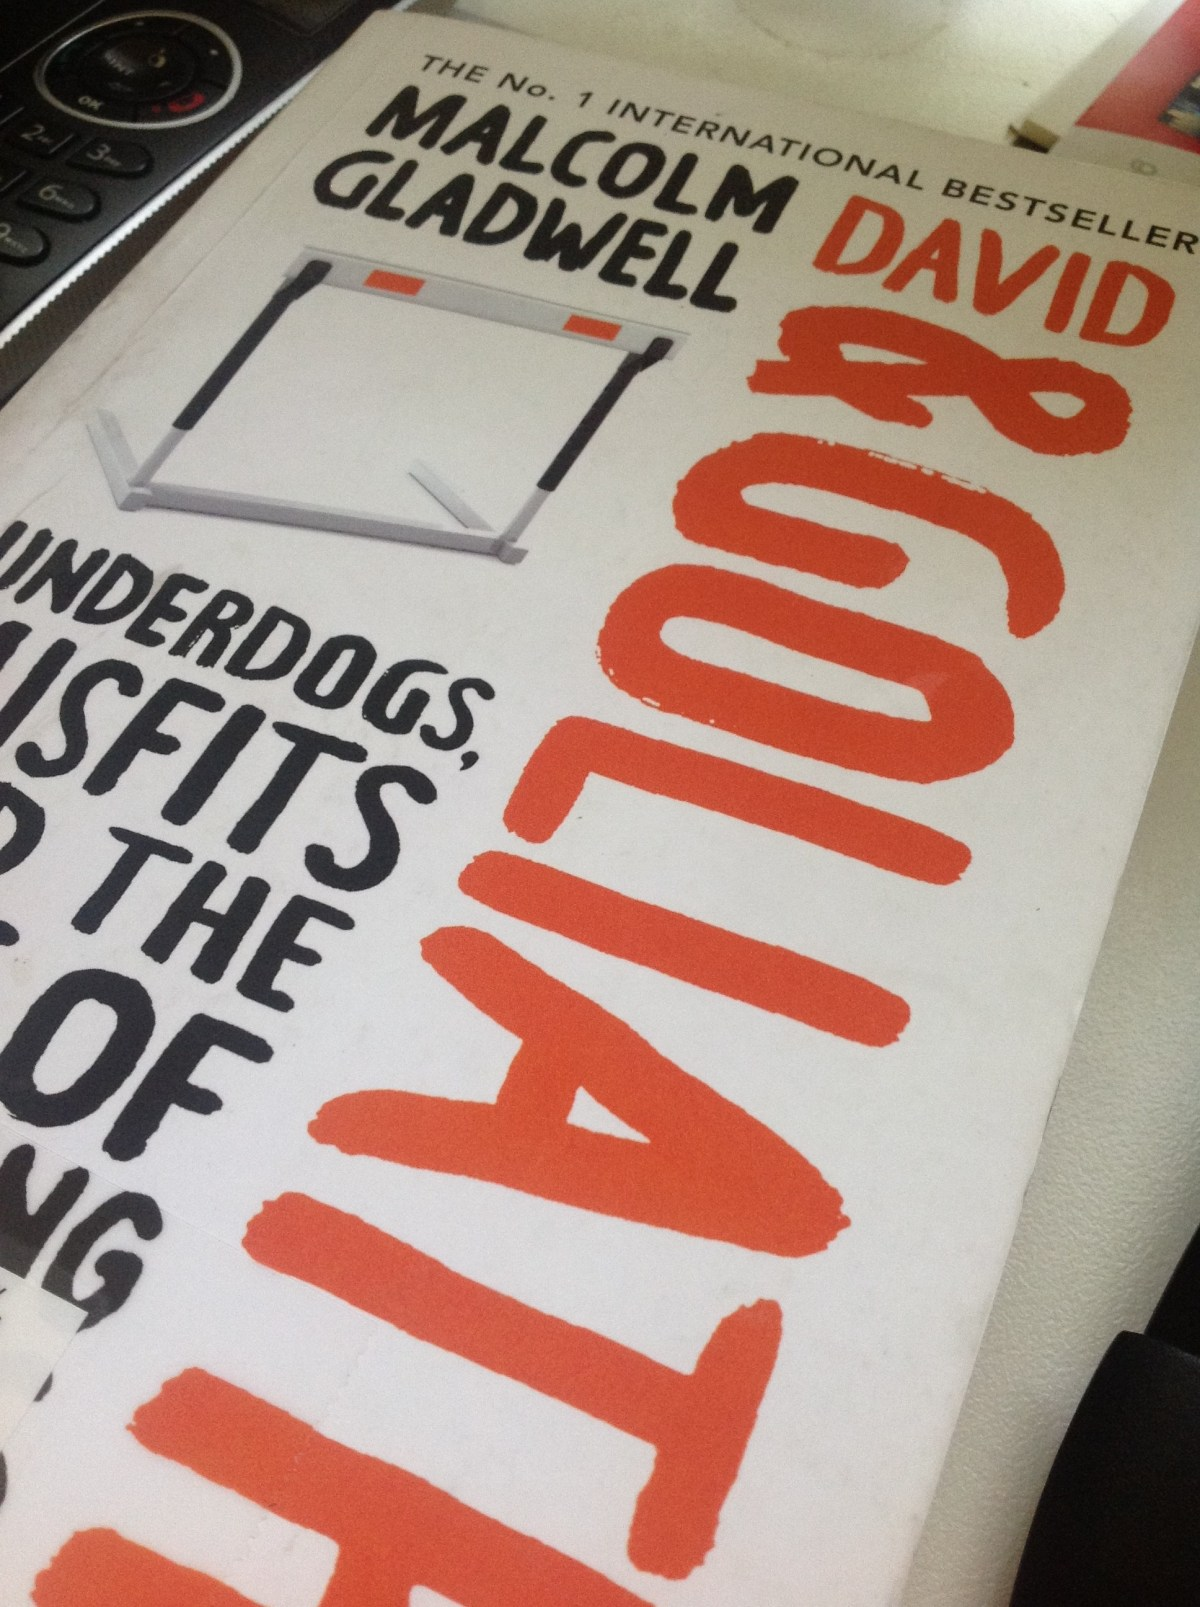 Book review - David and Goliath